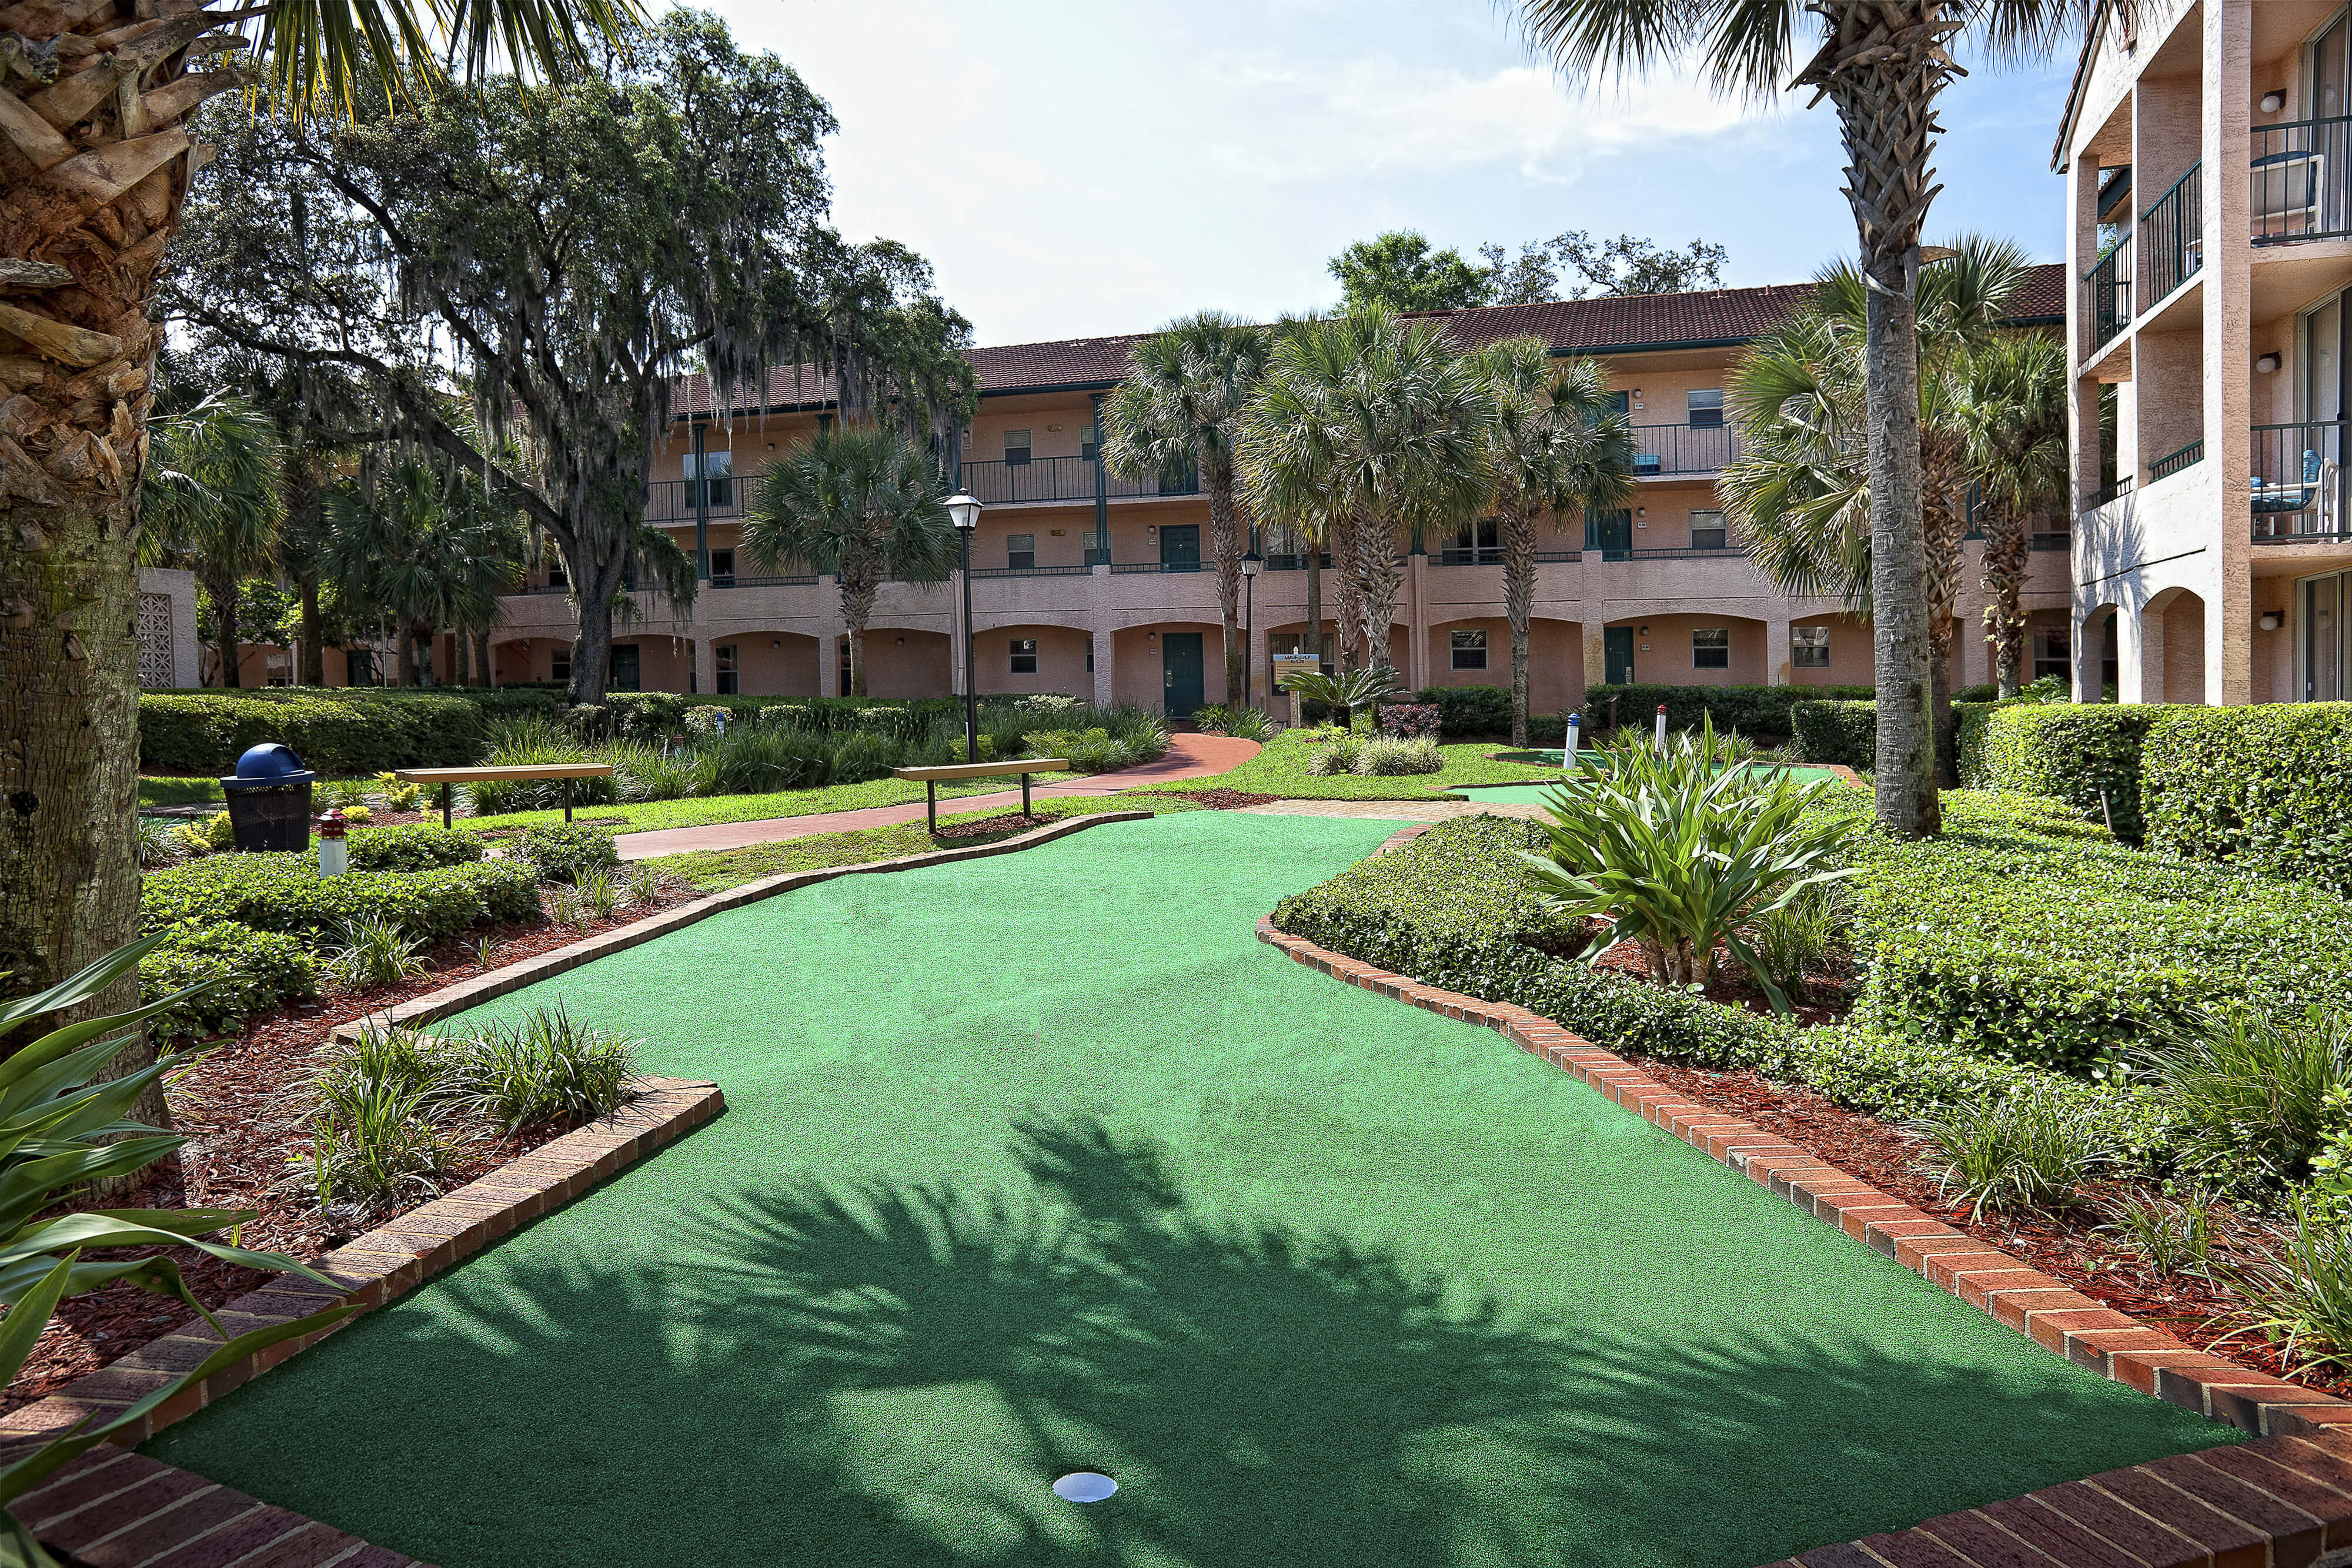 Miniature Golf Course winding through Resort grounds | Westgate Blue Tree Resort